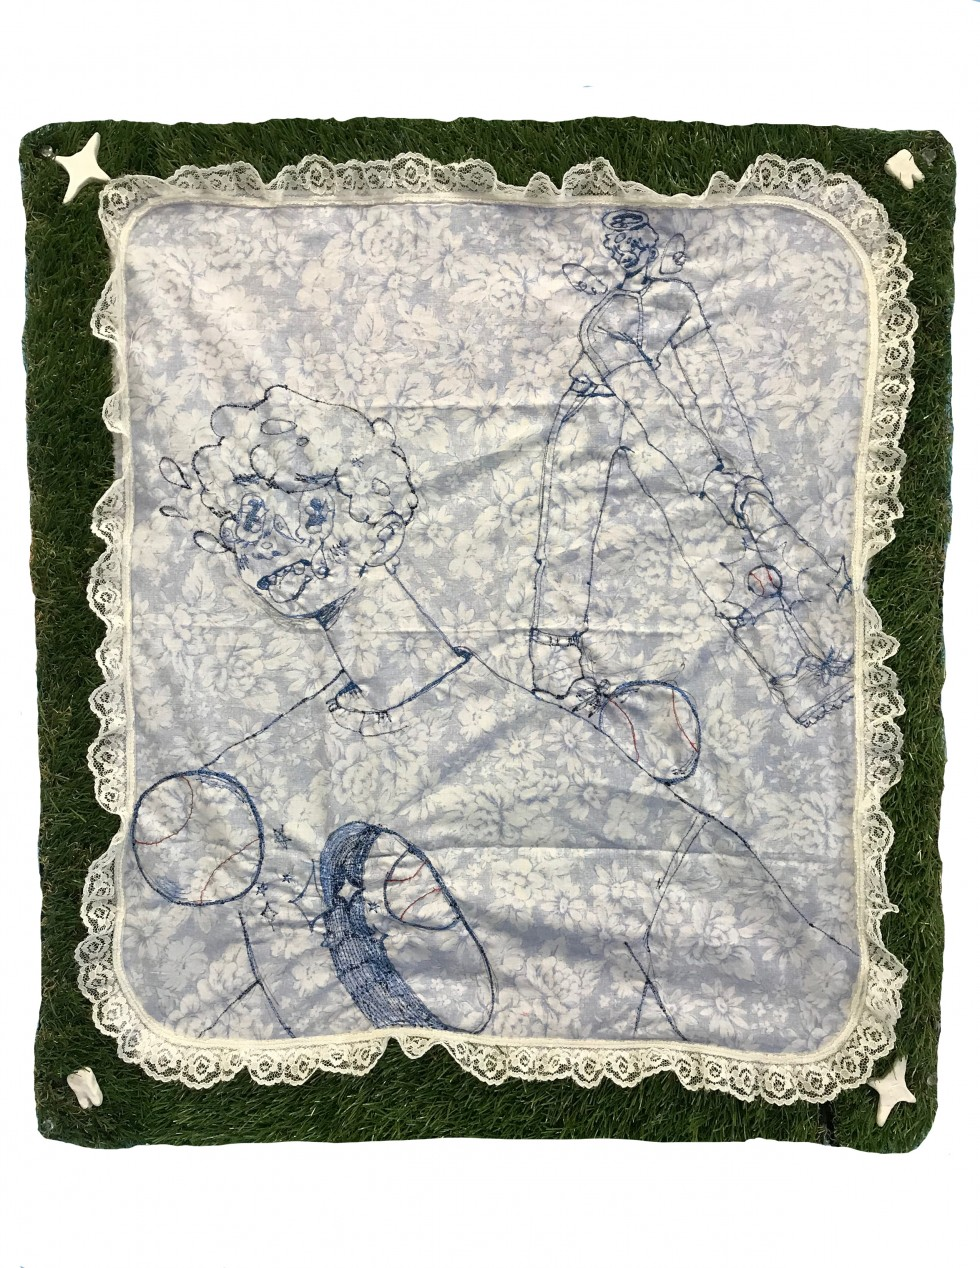 Embroidered drawing on floral fabric surrounded by a border of astroturf. The drawn image shows an angel hitting a baseball through a boy's chest. As the baseball enters his chest, a portal is opened up in the body for the ball to pass through.